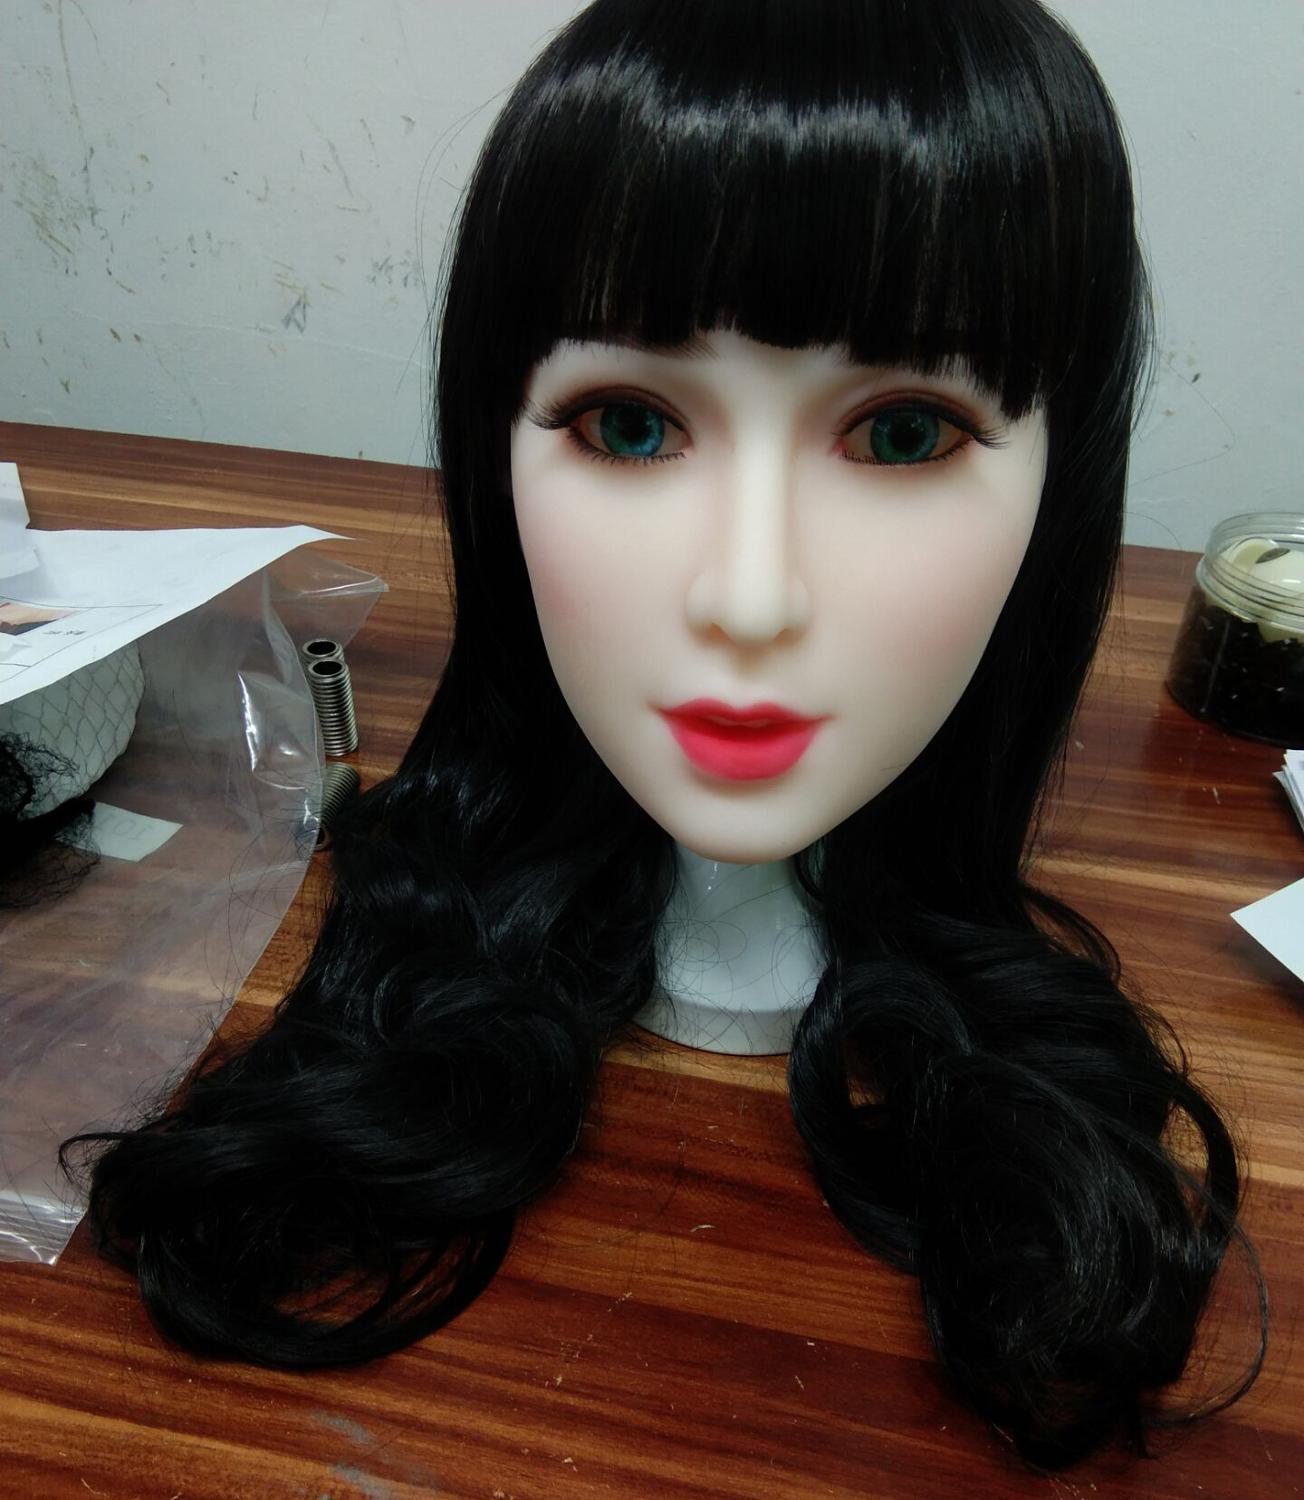 Japanese real silicone <font><b>dolls</b></font> real human love <font><b>dolls</b></font> <font><b>Chinese</b></font> <font><b>sex</b></font> <font><b>doll</b></font> <font><b>head</b></font> oral TPE image